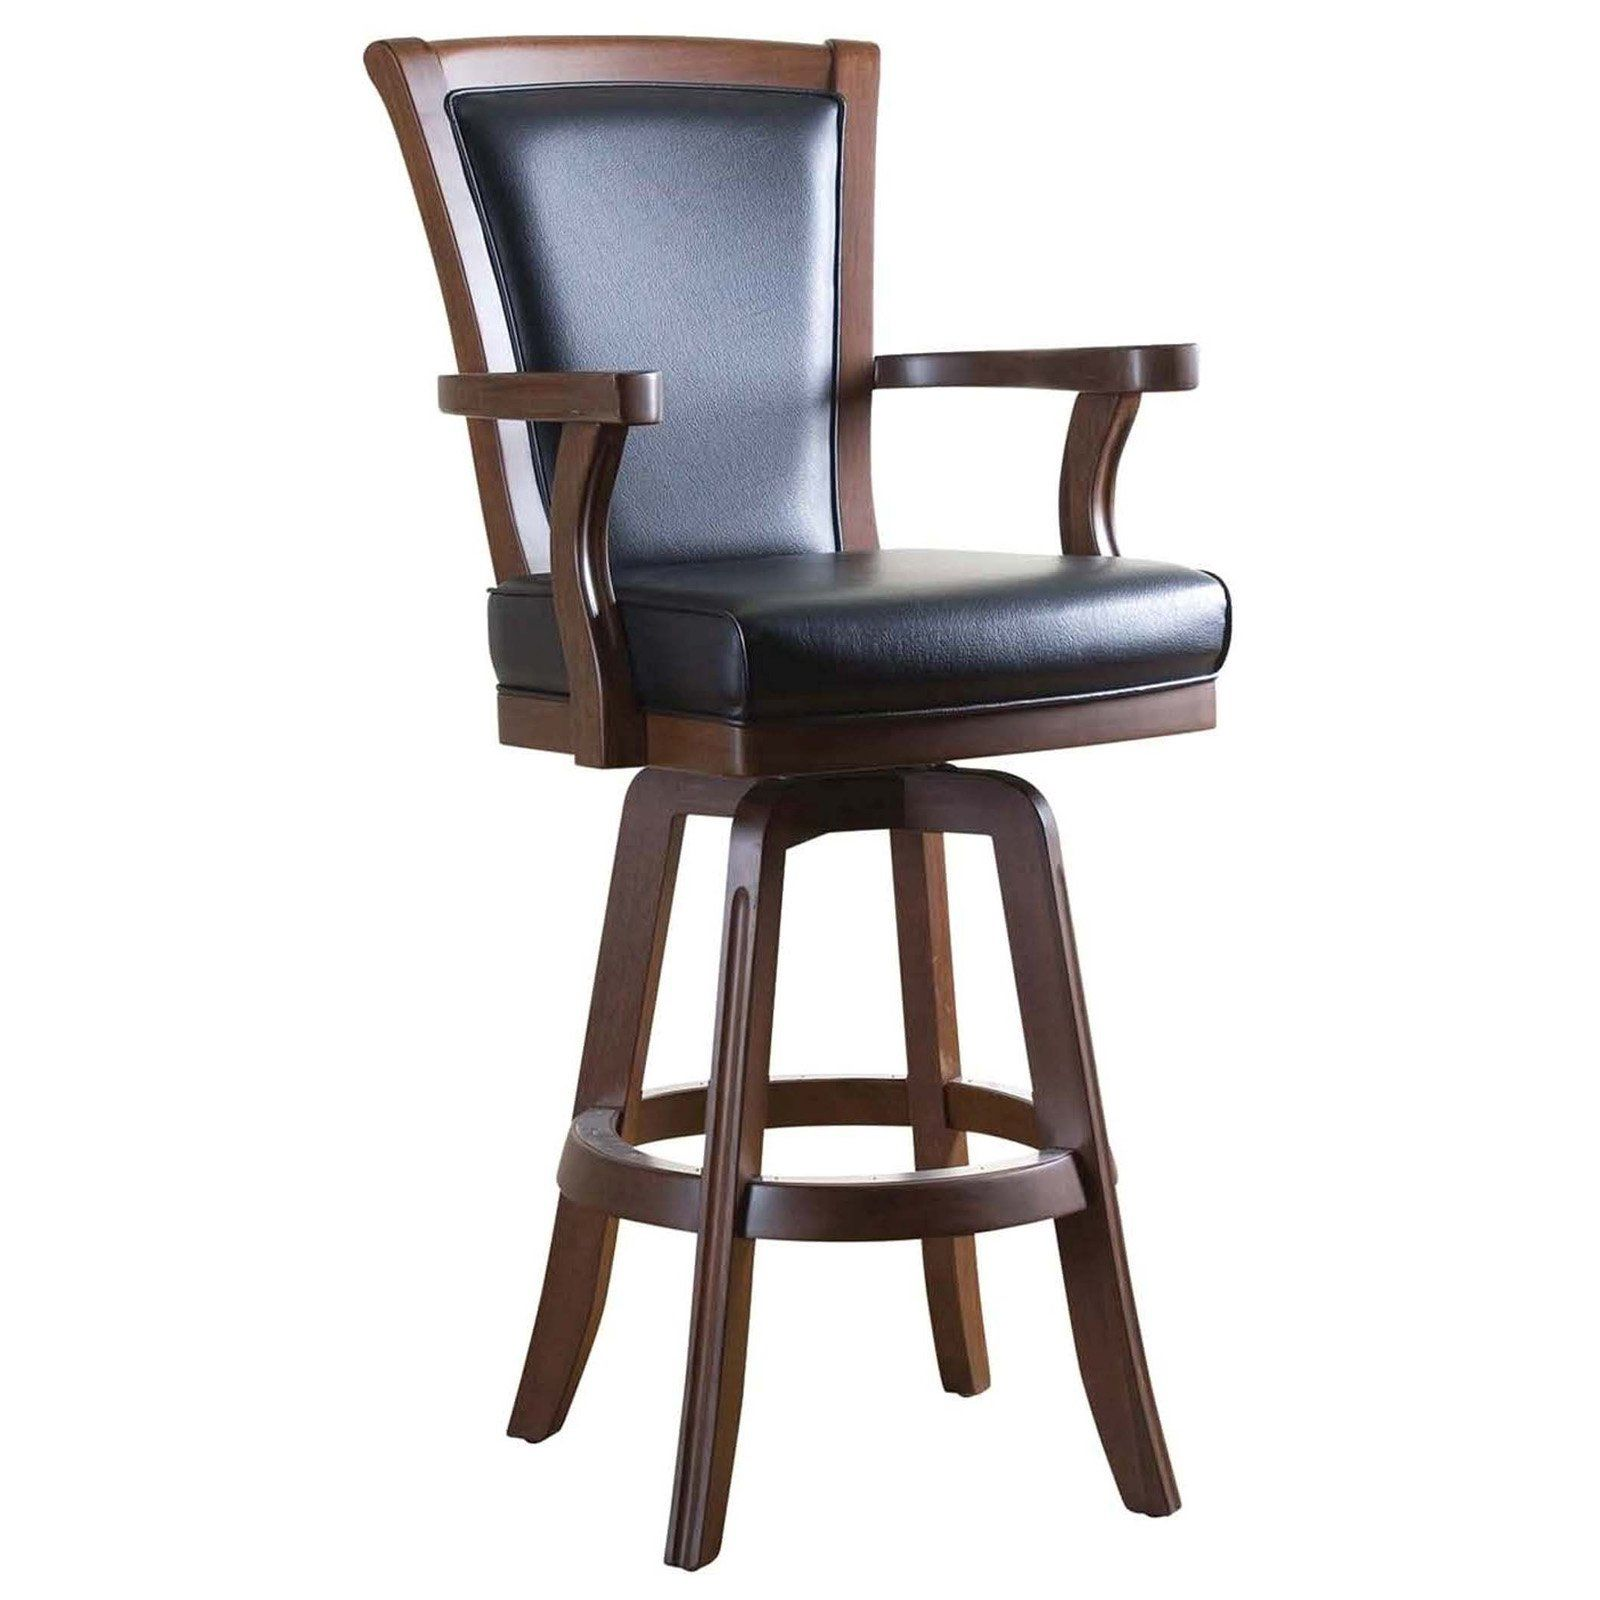 Ahb Auburn 30 In Swivel Bar Stool With Arms The Handsome